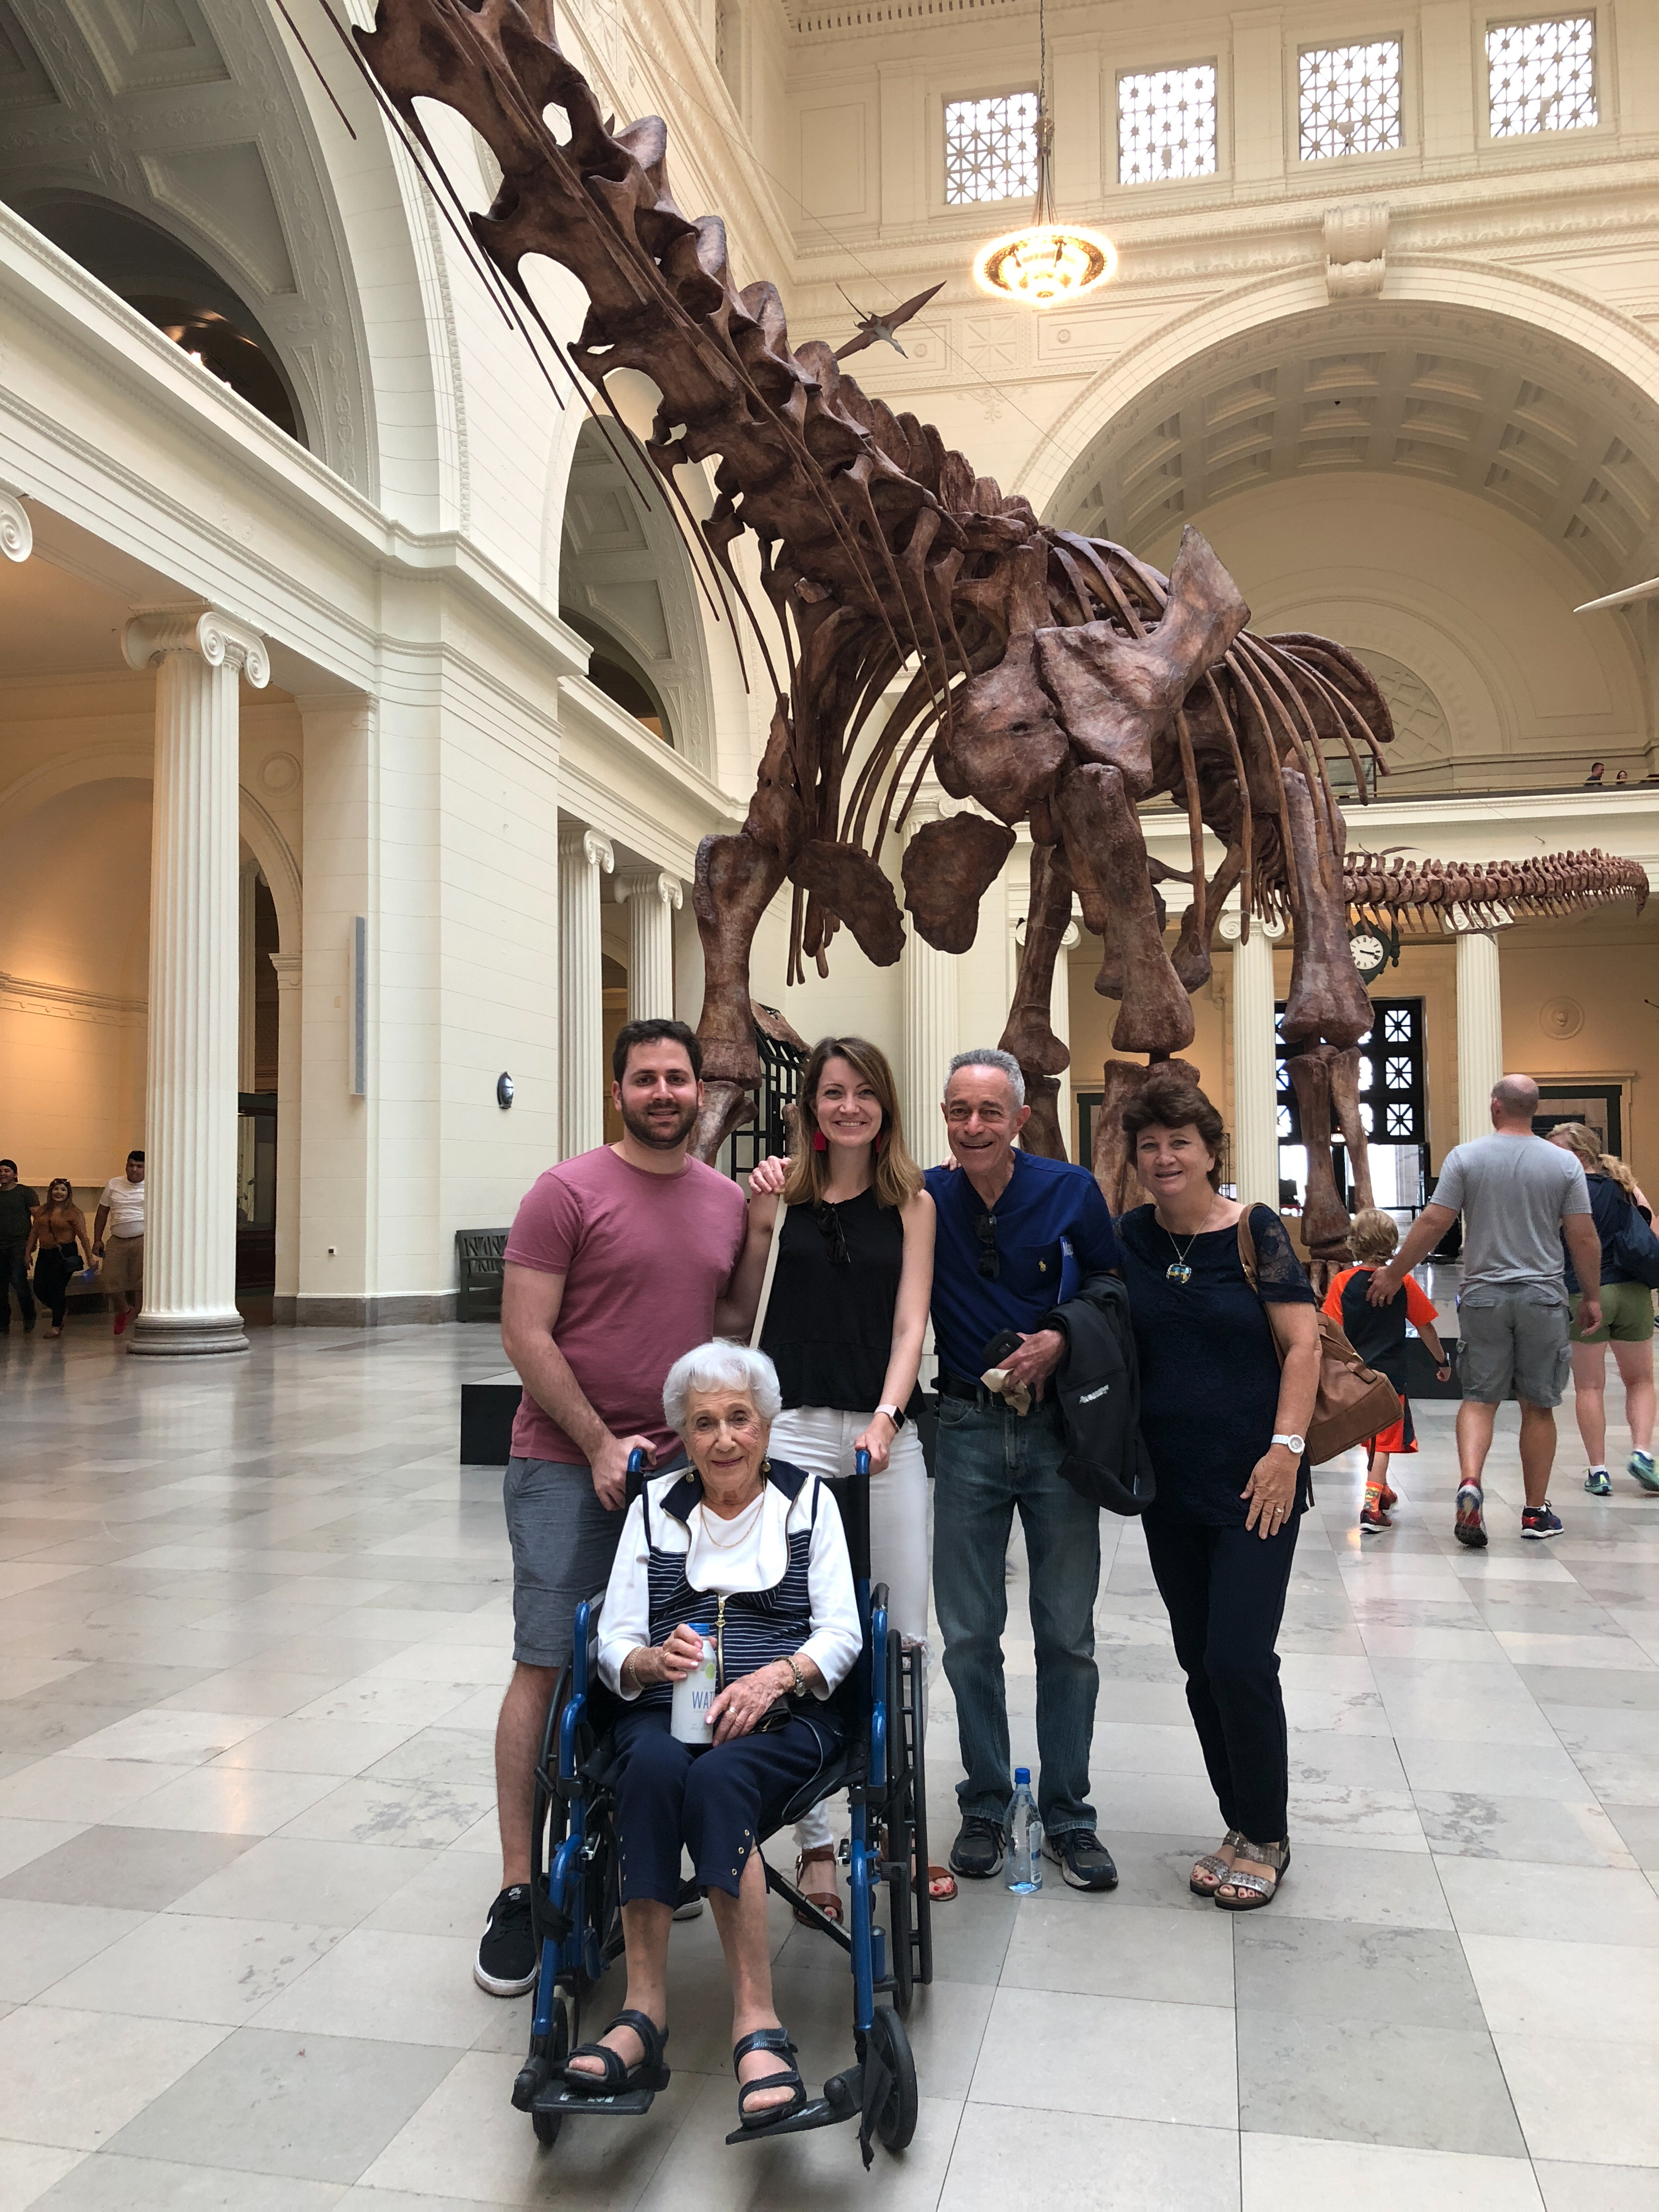 What to do with family in Chicago